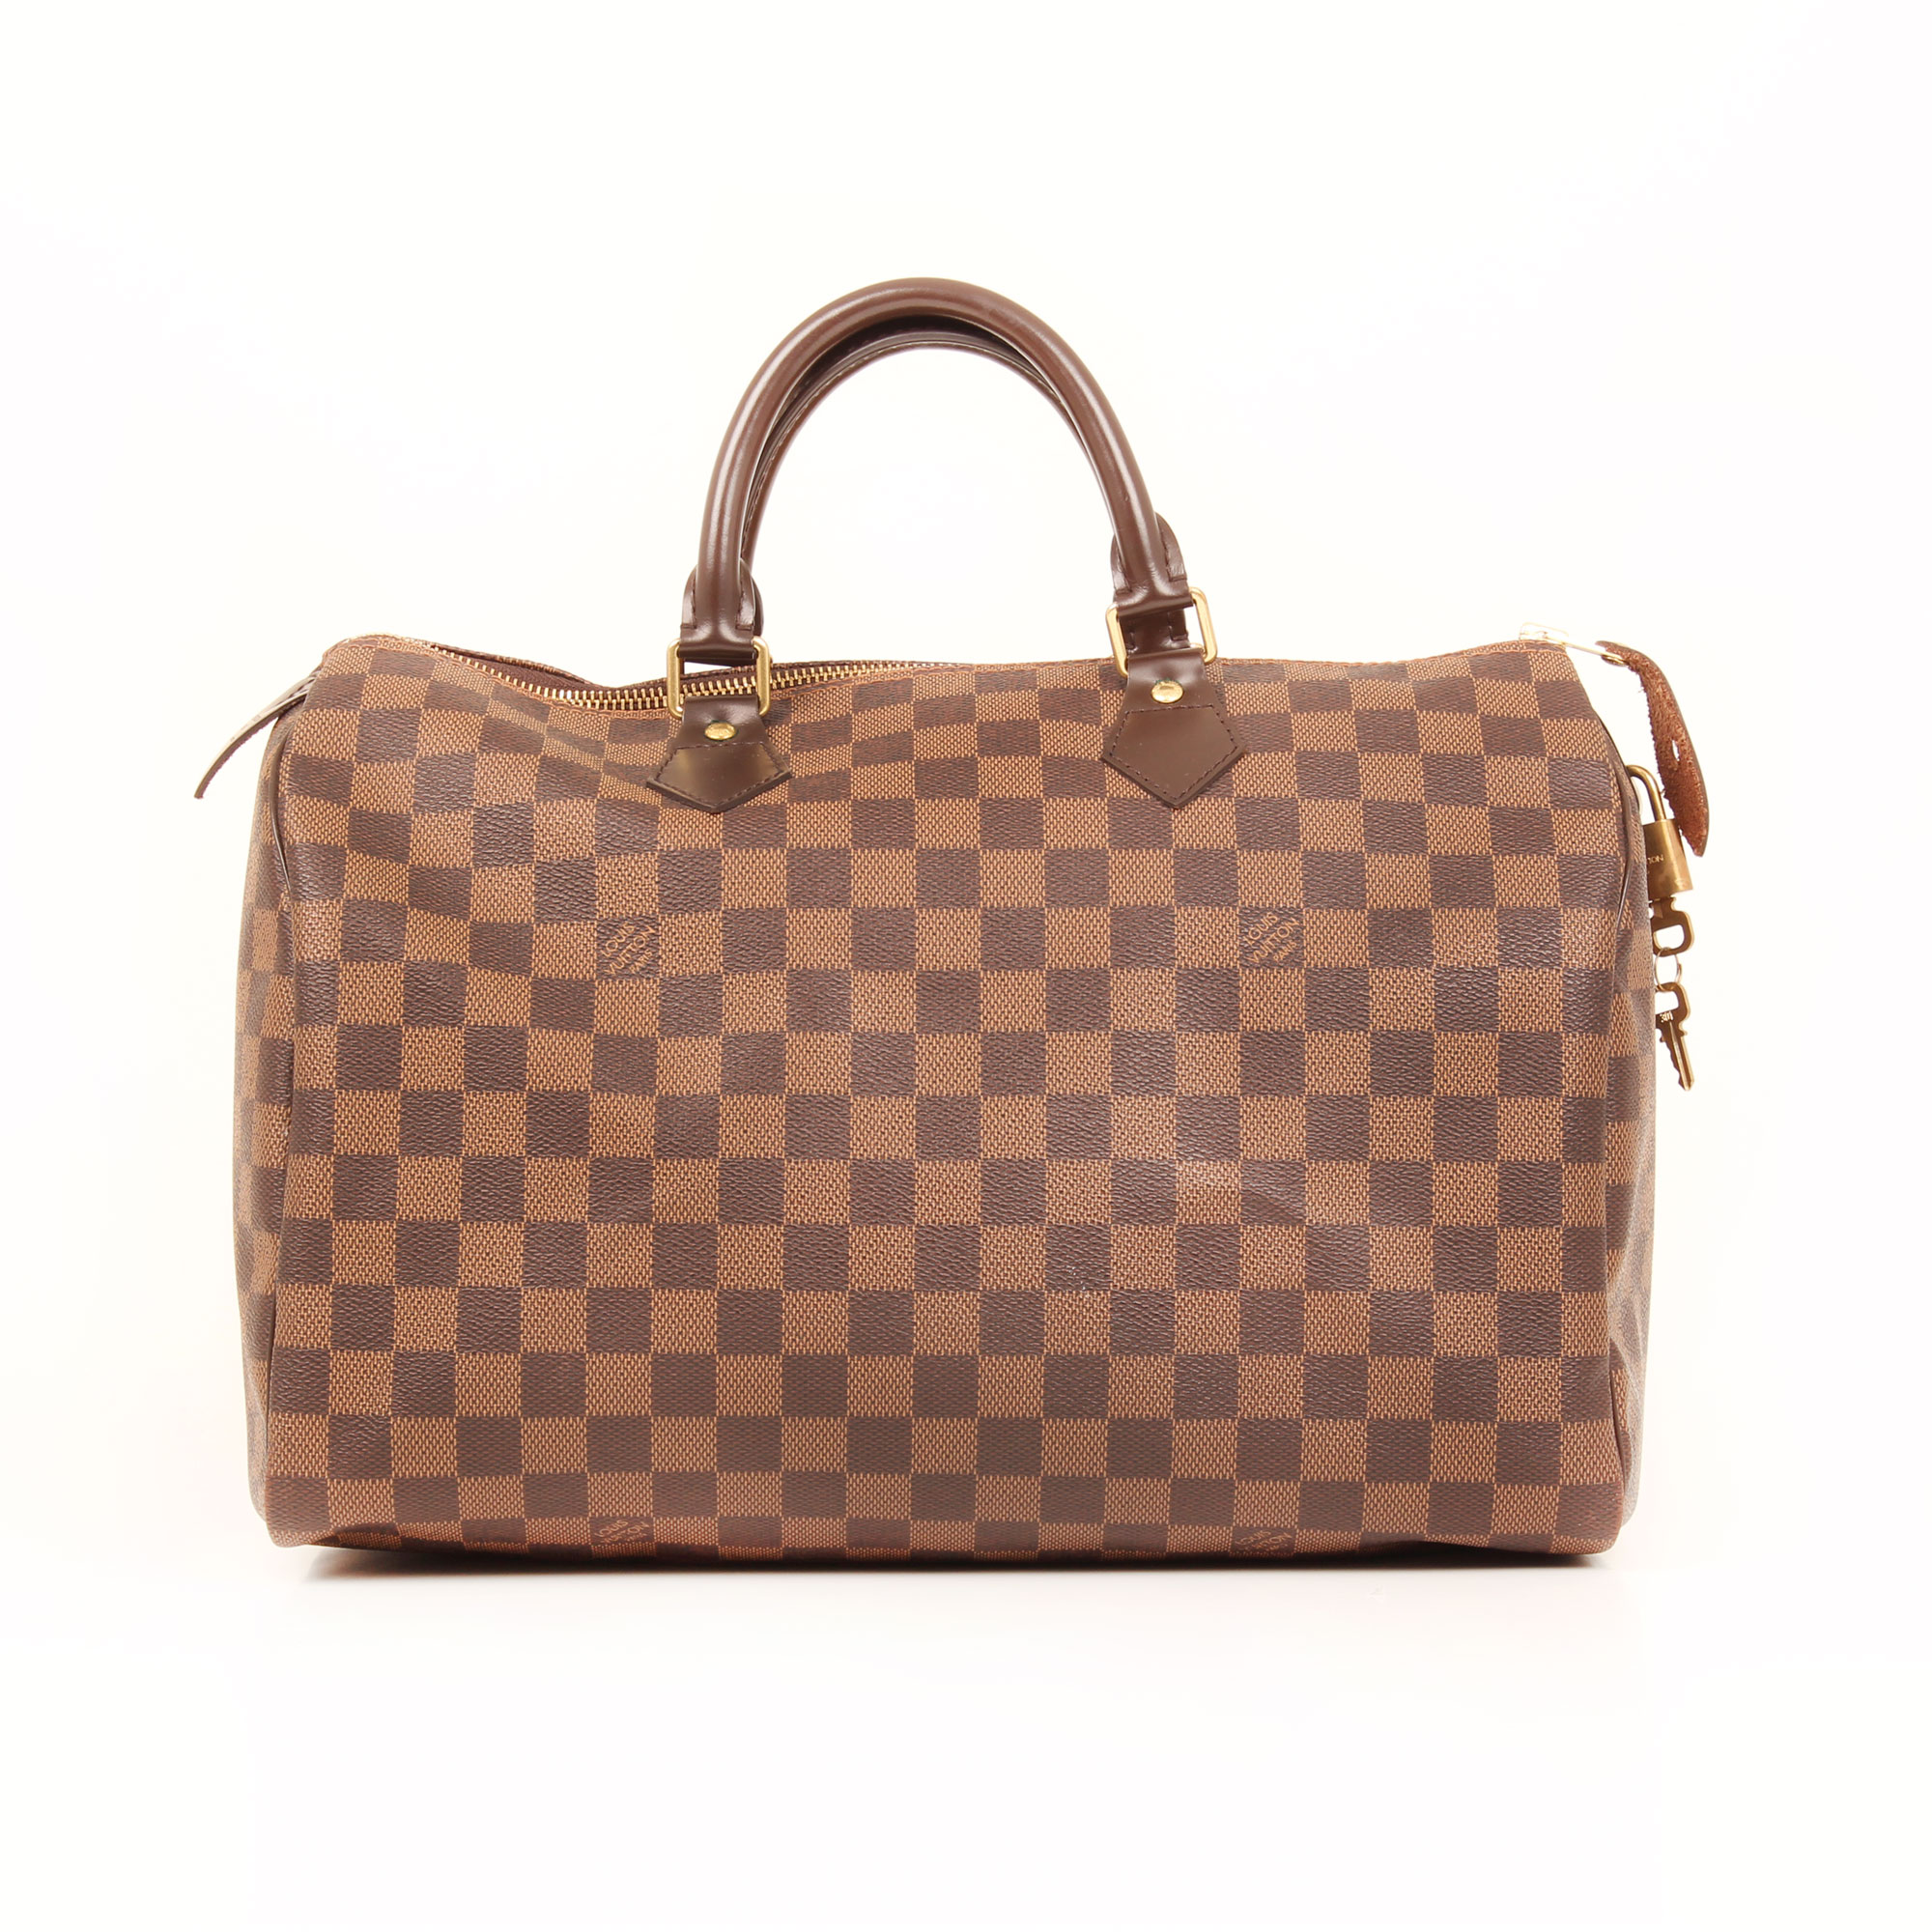 bag-louis-vuitton-speedy-35-damier-ebene-back